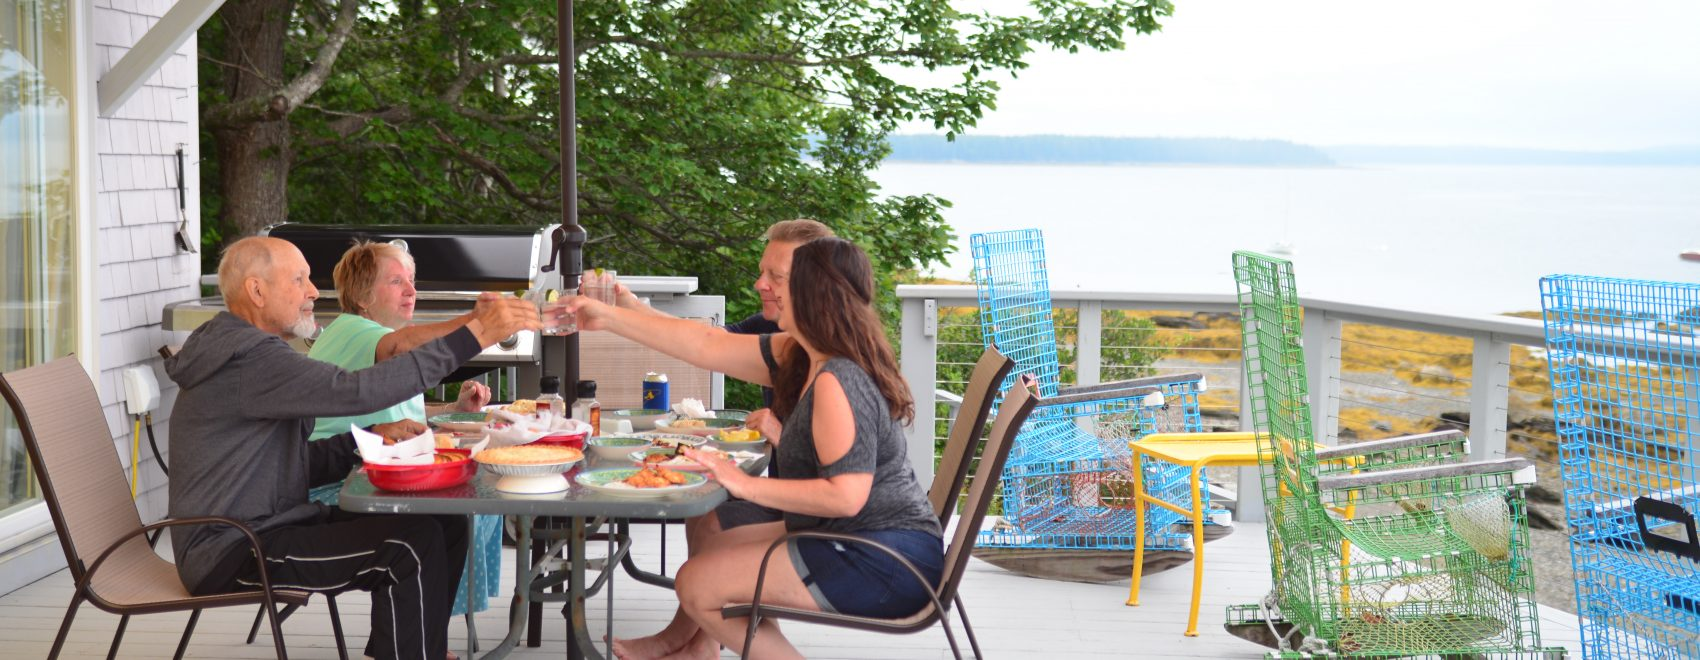 Dinner on the deck at Bar Harbor View Cottage